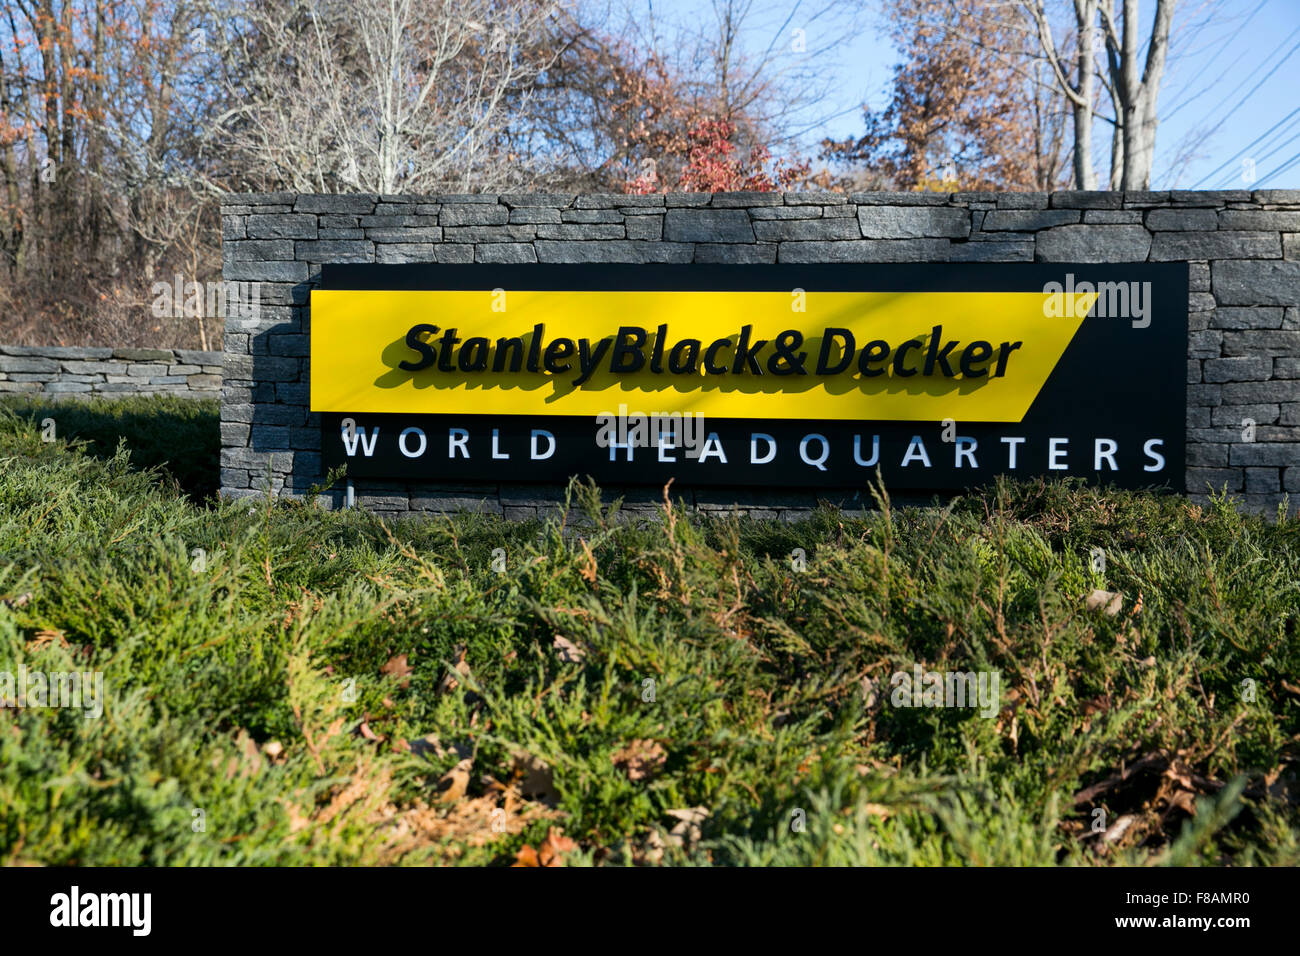 A logo sign outside of the headquarters of Stanley Black & Decker, Inc., in New Britain, Connecticut on November - Stock Image